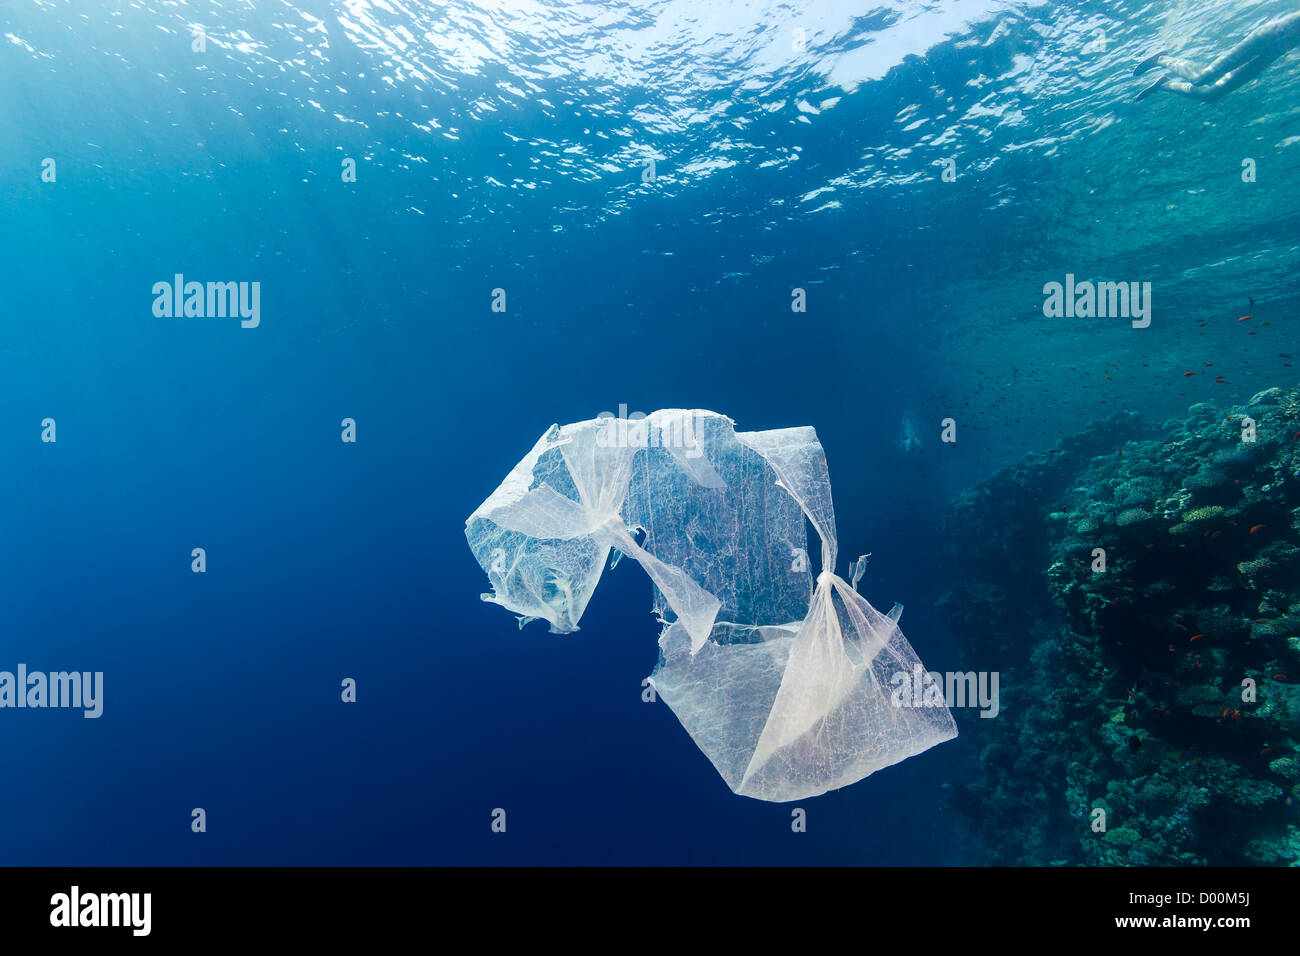 A discarded waste plastic bag floats in open ocean near a coral reef wall in the Red Sea - Stock Image